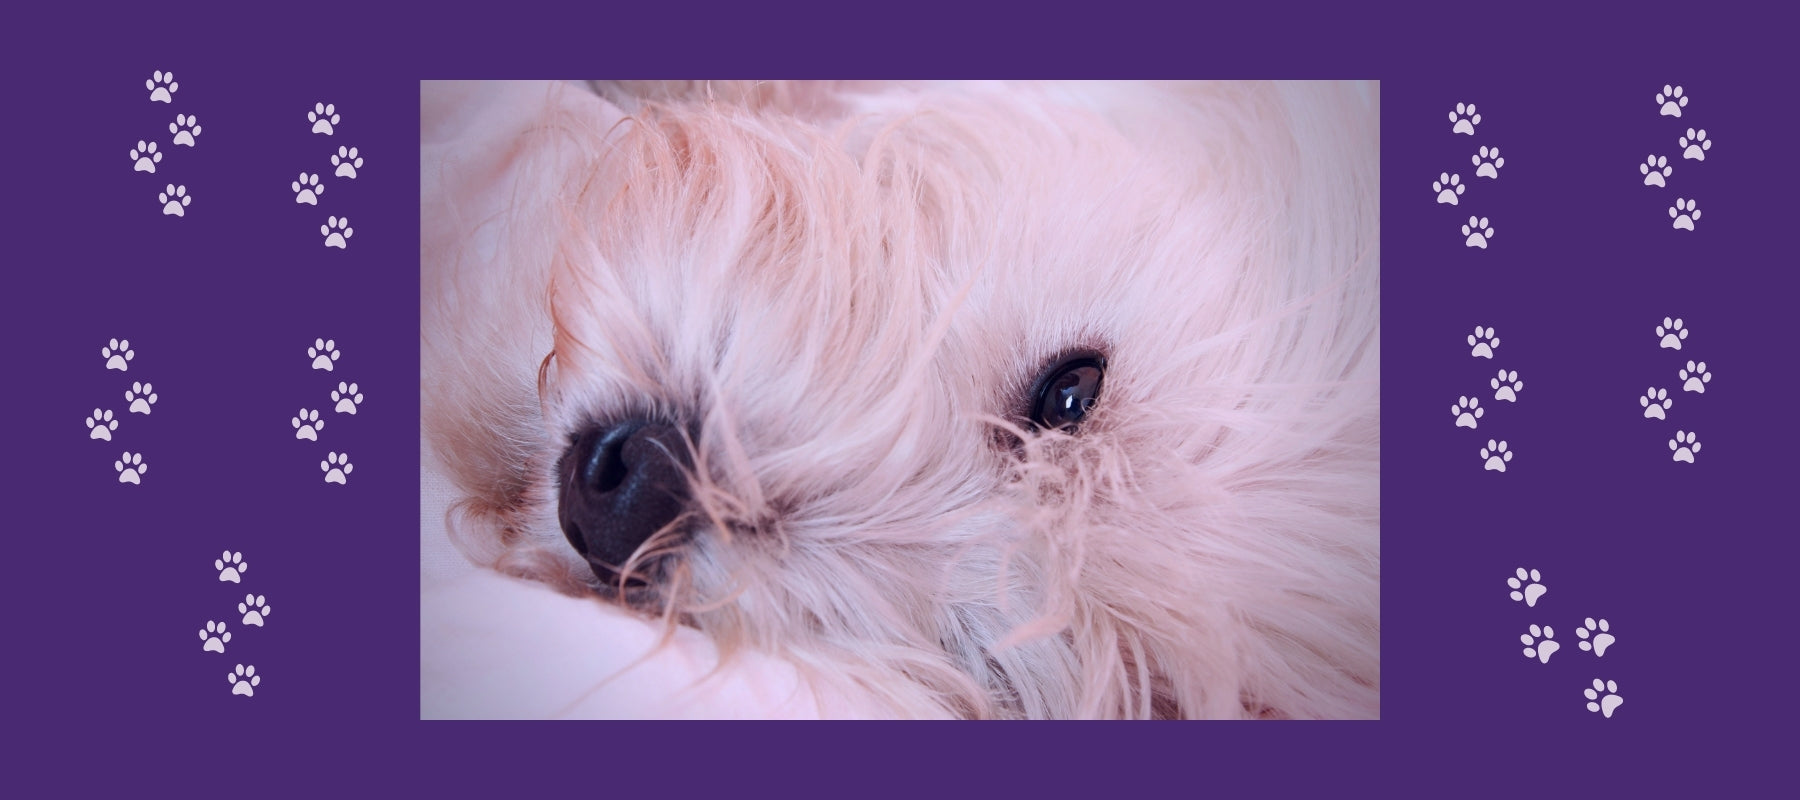 White dog of the bichon breed sleeping with one eye open